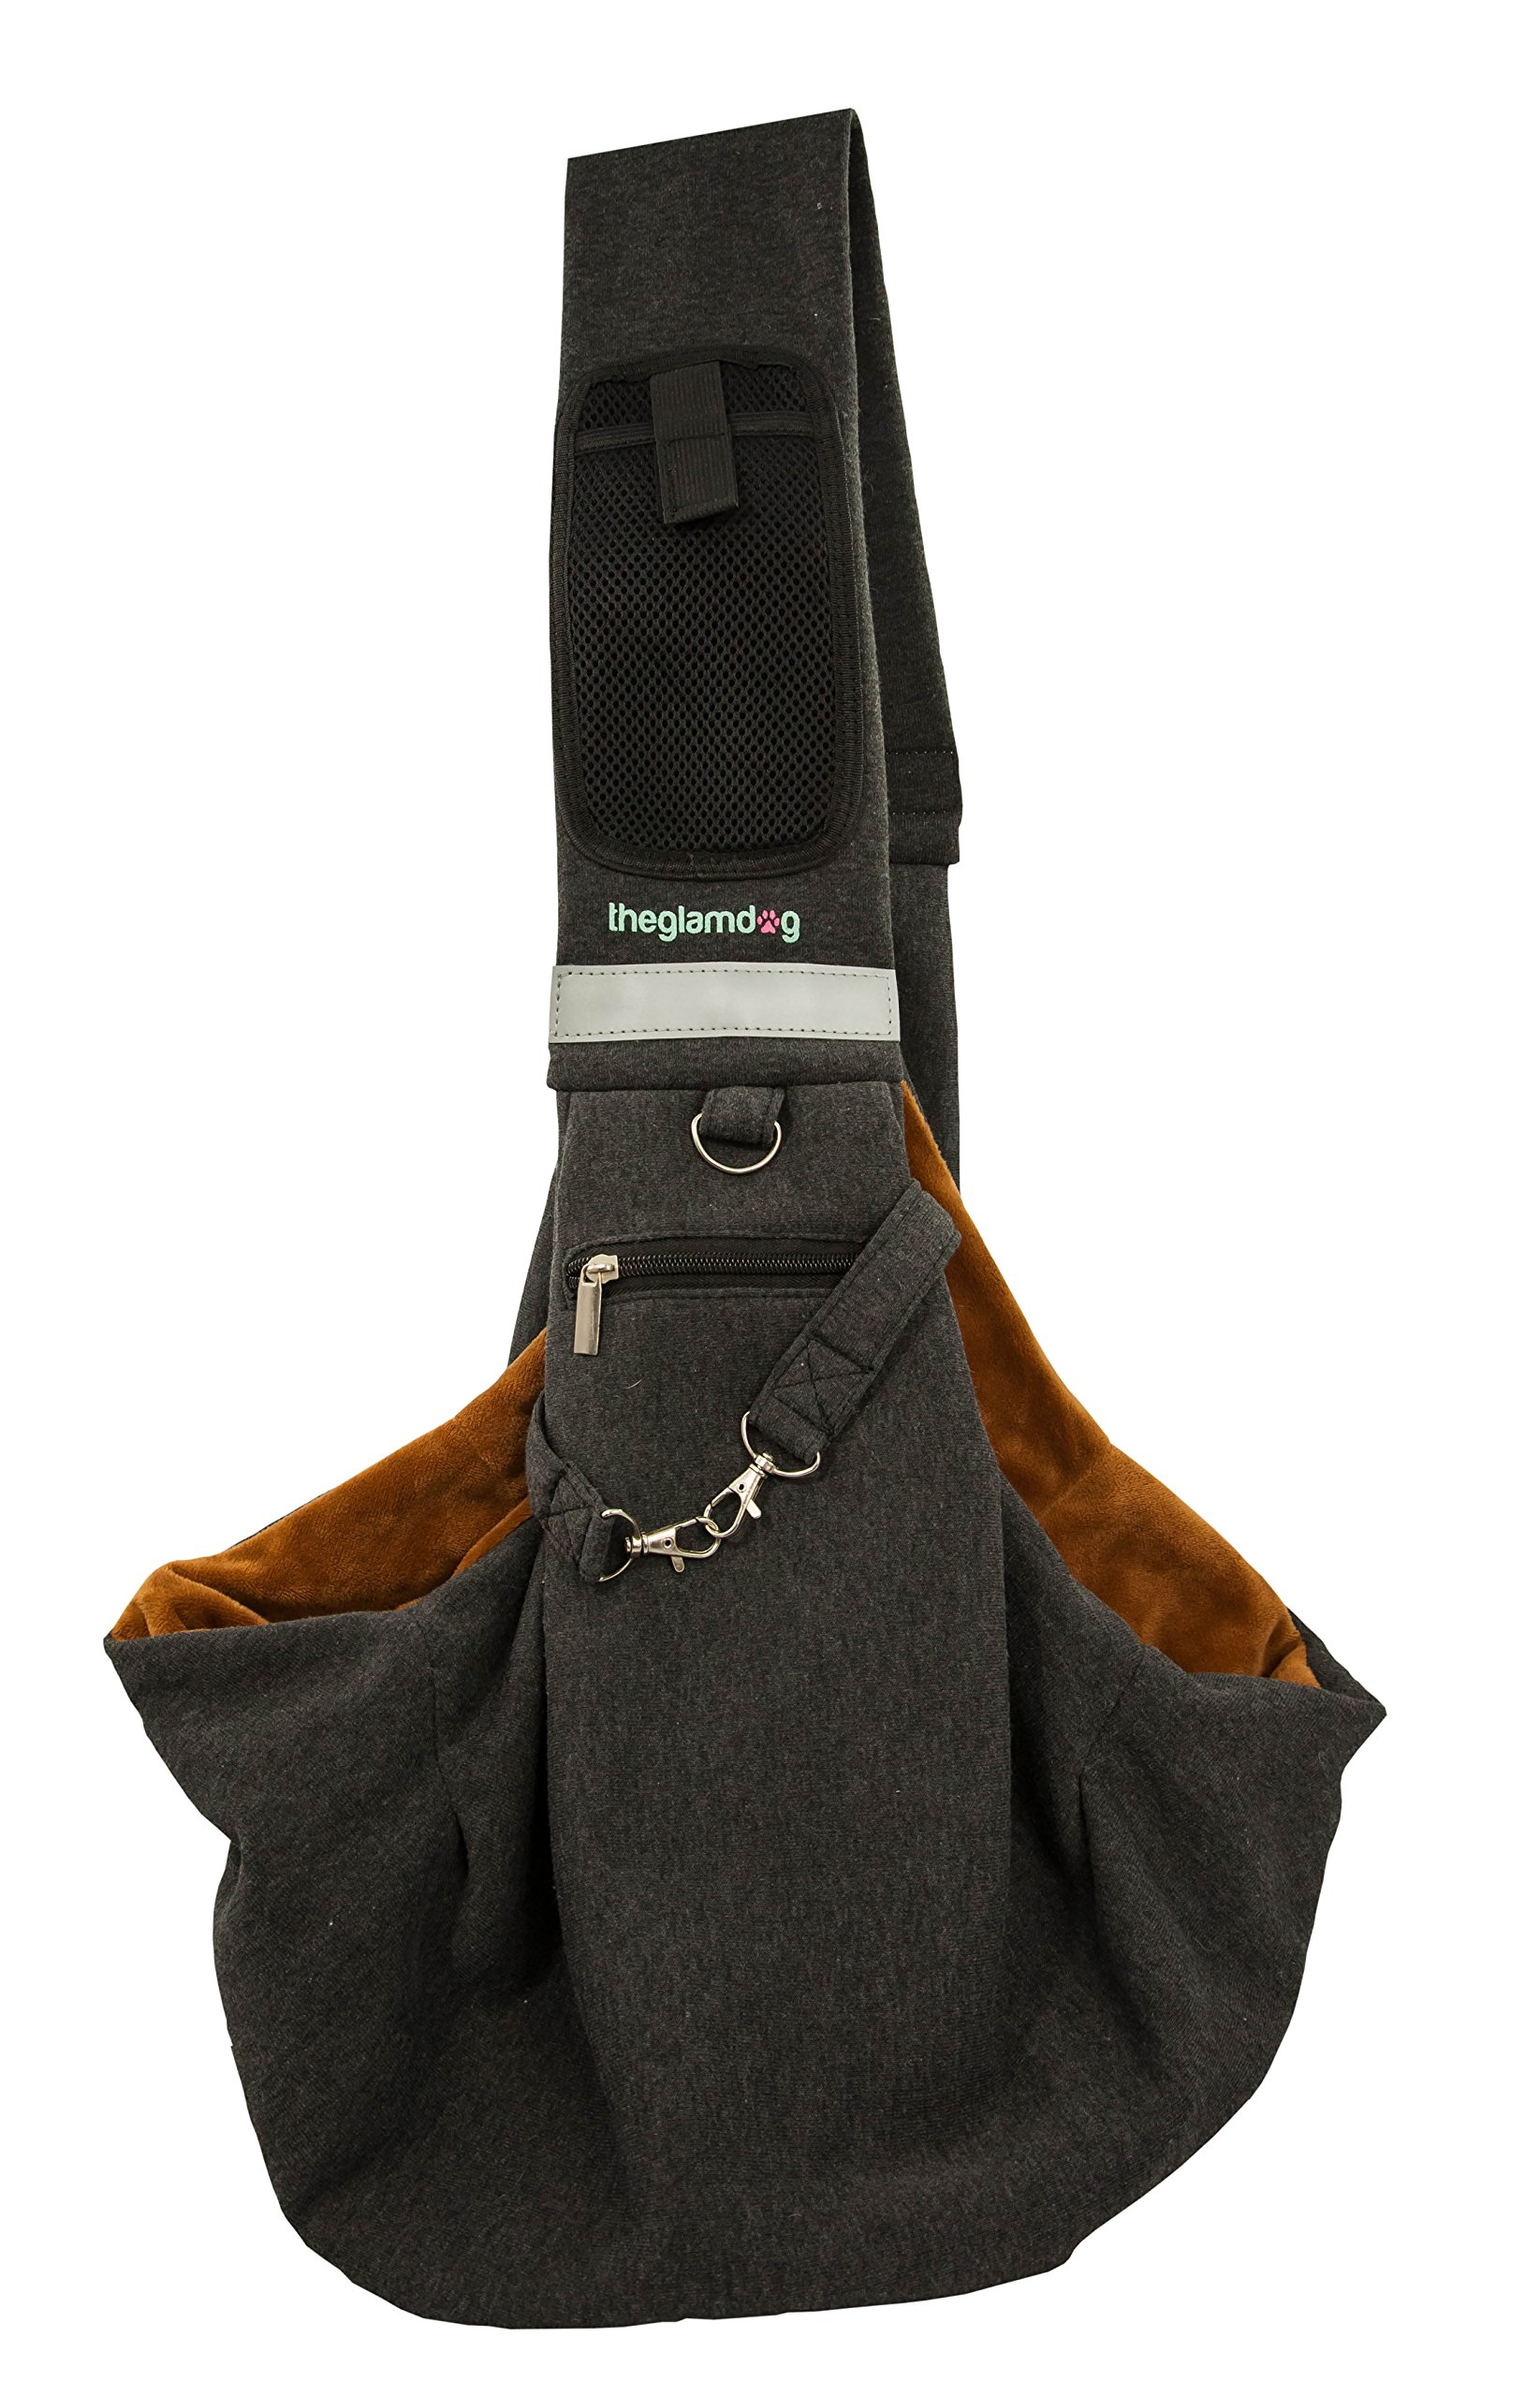 yohino Theglamdog Pet Carrier Shoulder Sling for Small Dogs and Cats, Smartphone Mesh Pocket with Velcro Closure and Zippered Pocket for Treats, Waste Bags, Small Flashlight (Black/Brown)